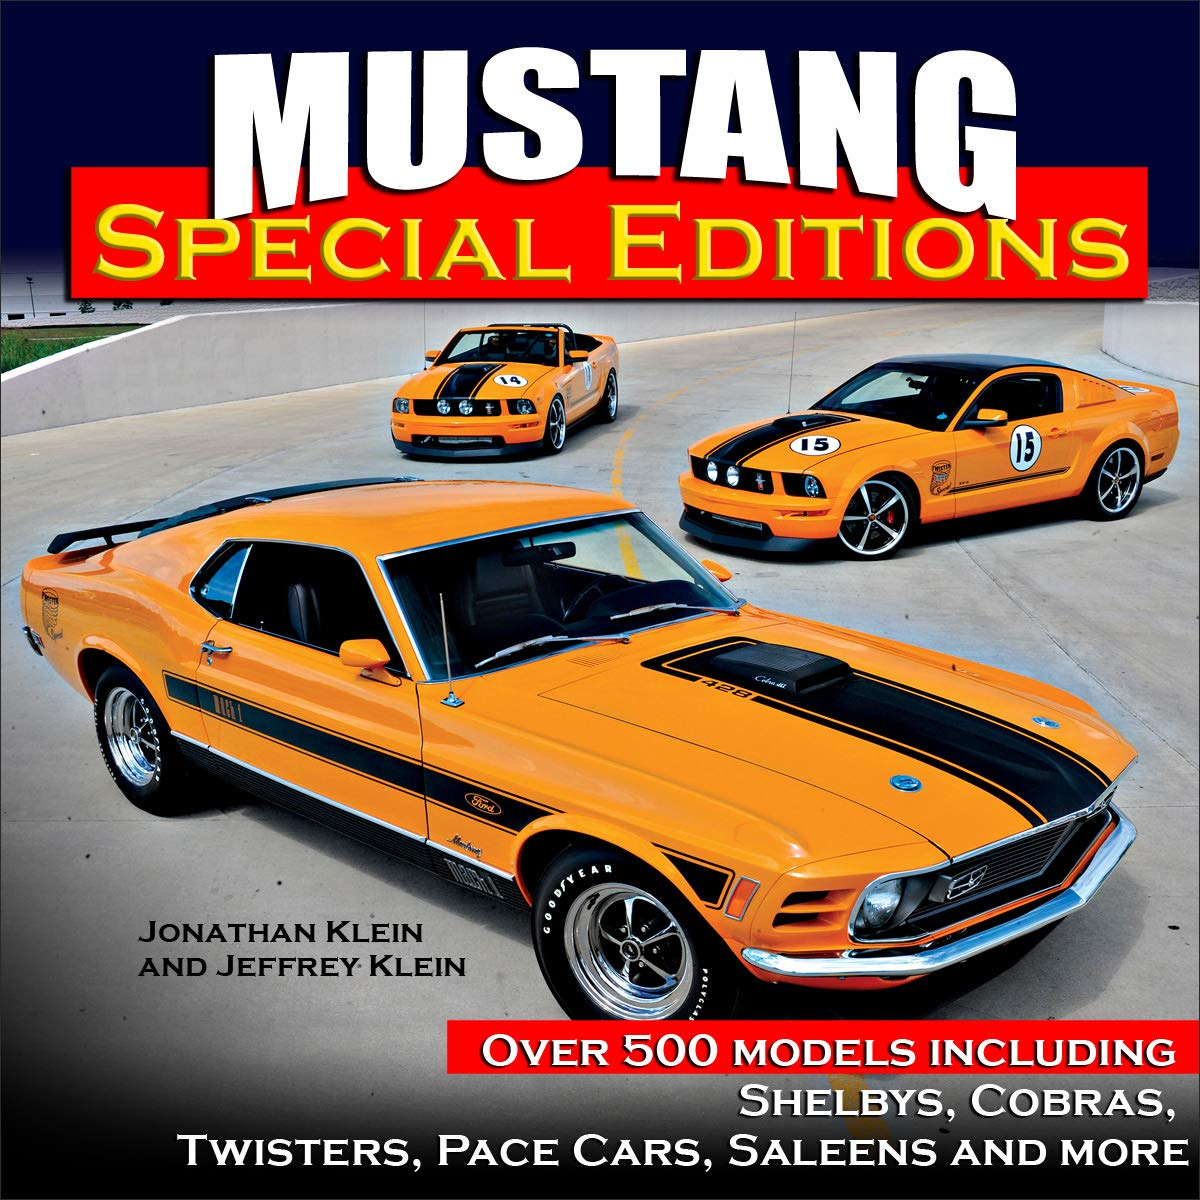 Mustang special editions over 500 models including shelbys cobras